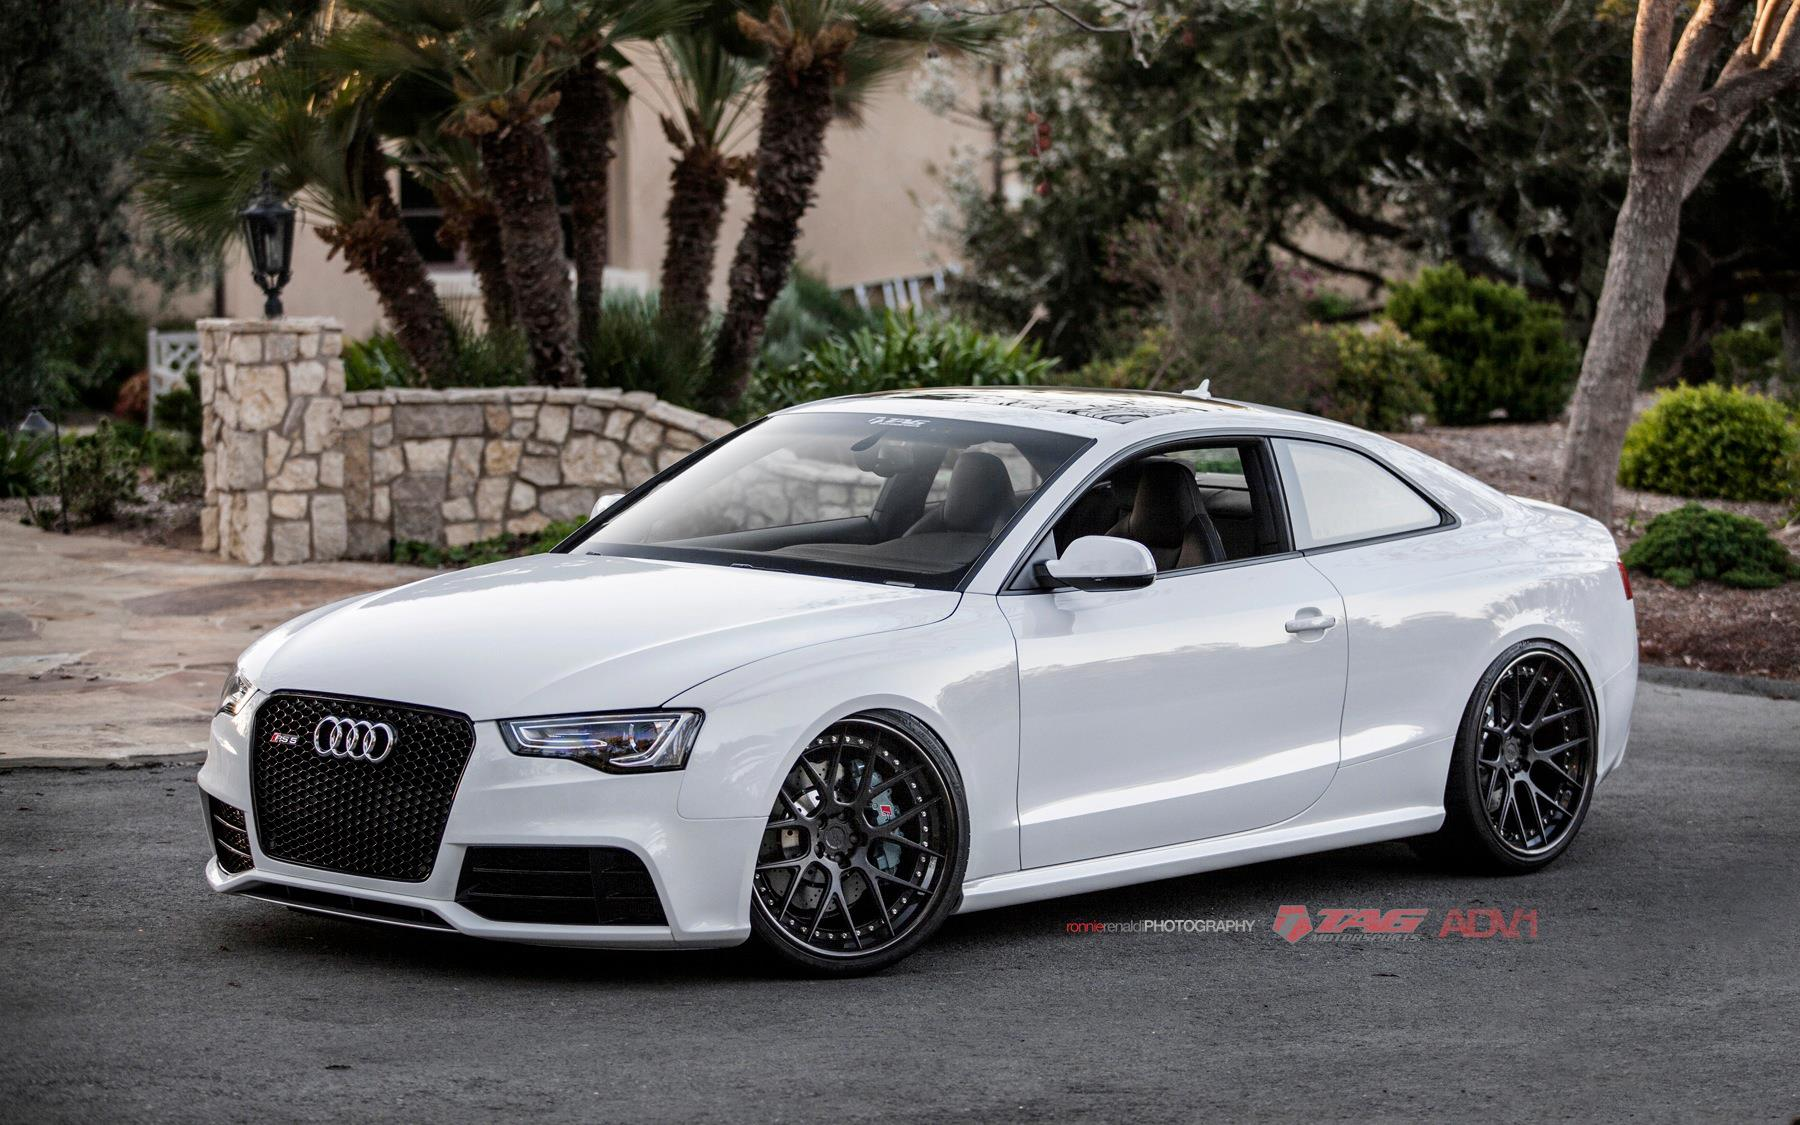 2013 Audi Rs5 Sharpened Up By Tag Motorsports Autoevolution